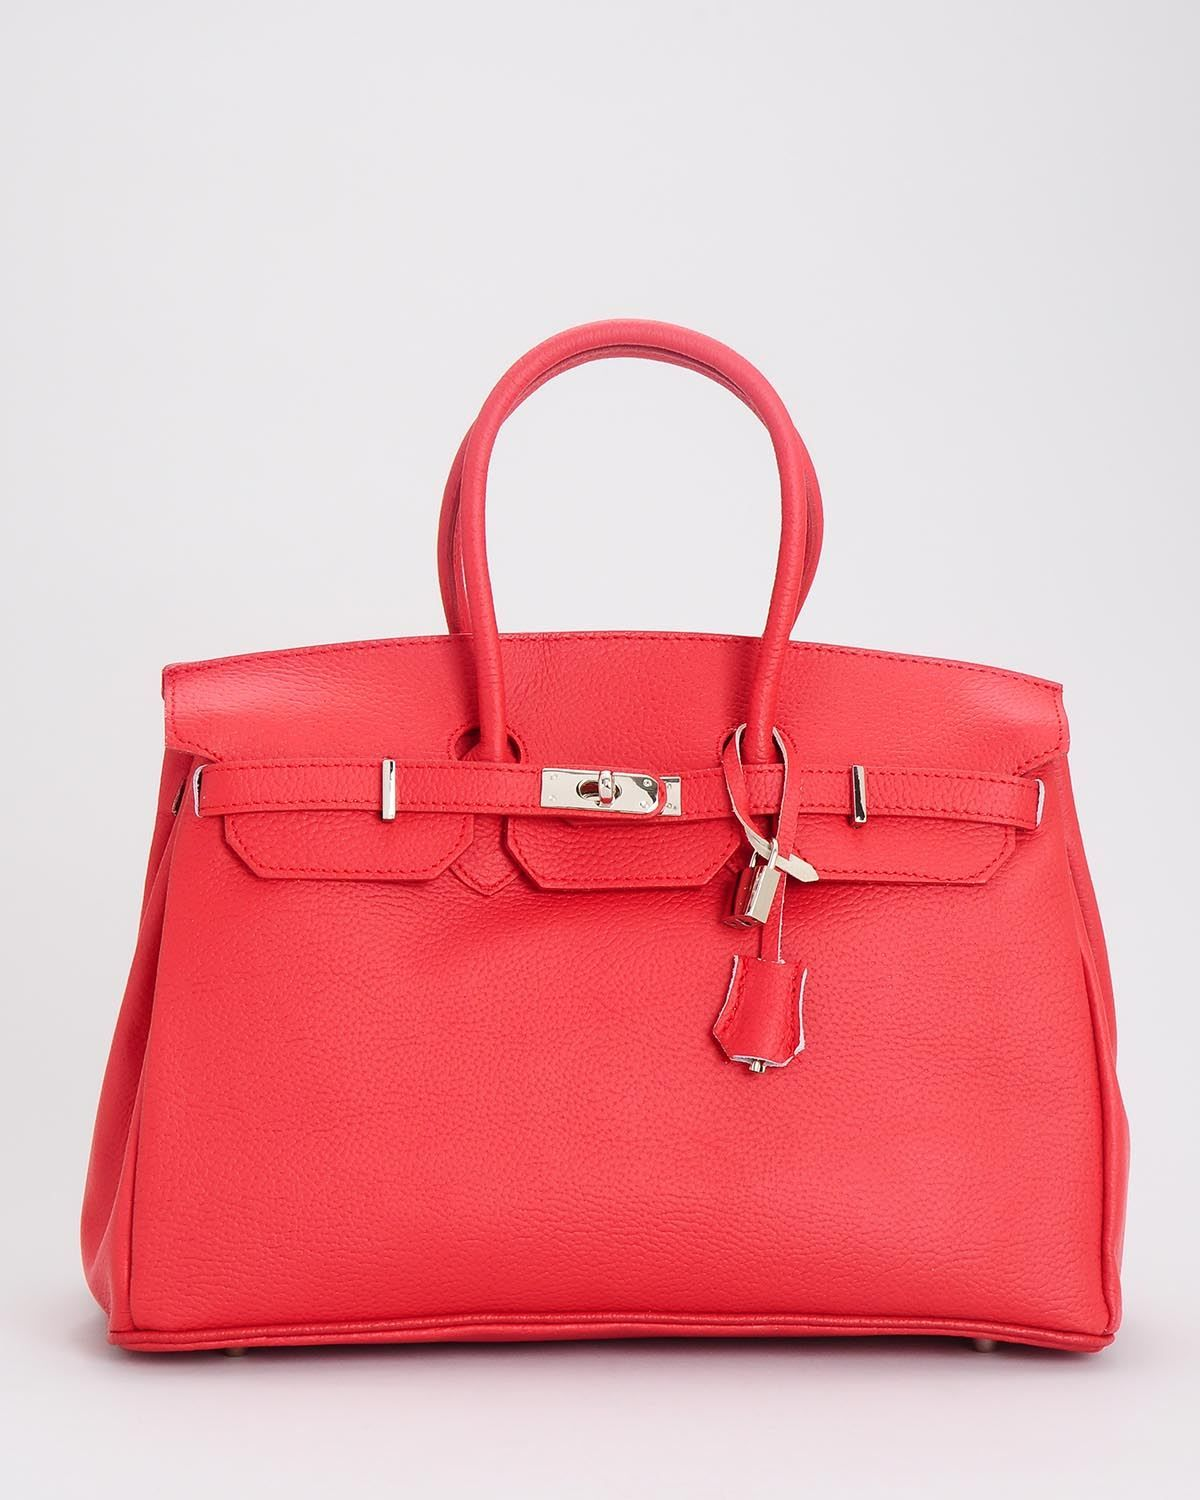 H Davina Genuine Leather Structured Top Handle Satchel- Made in ... 911cb72aba44e